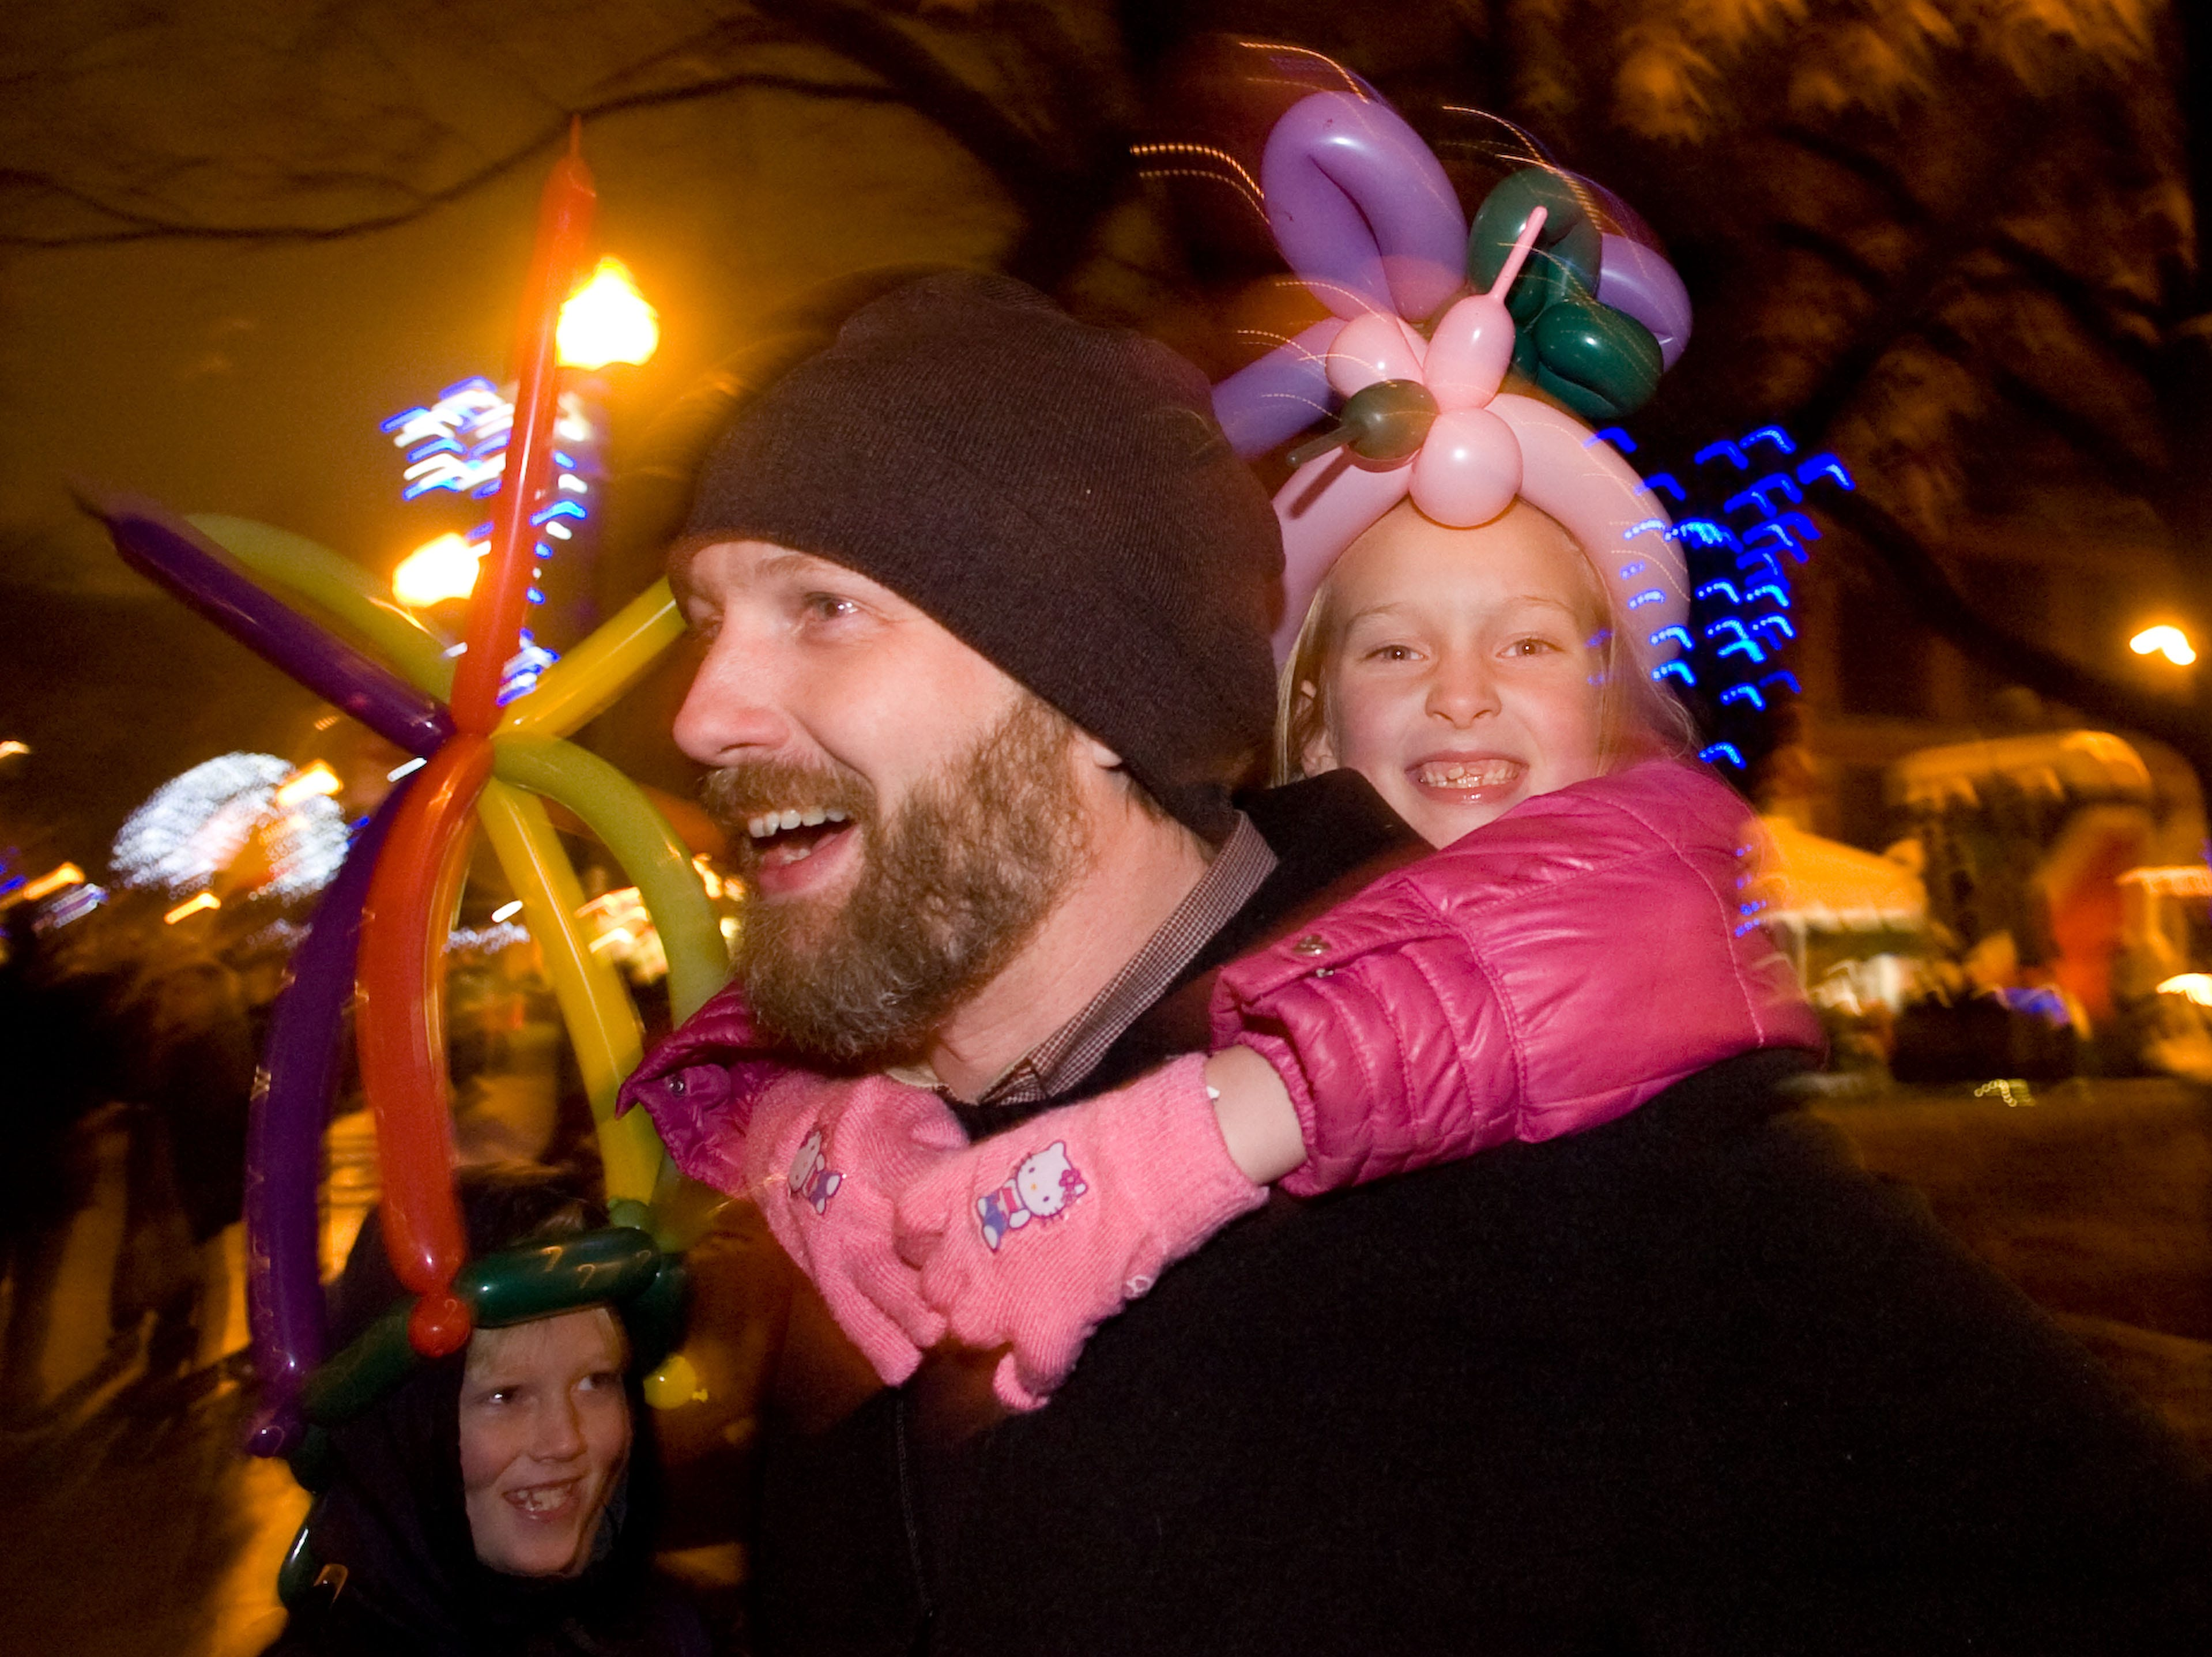 Randy Brown spends New Year's Eve with his son CadNew Year's Eve celebration on Thursday, Dec 31, 2009.